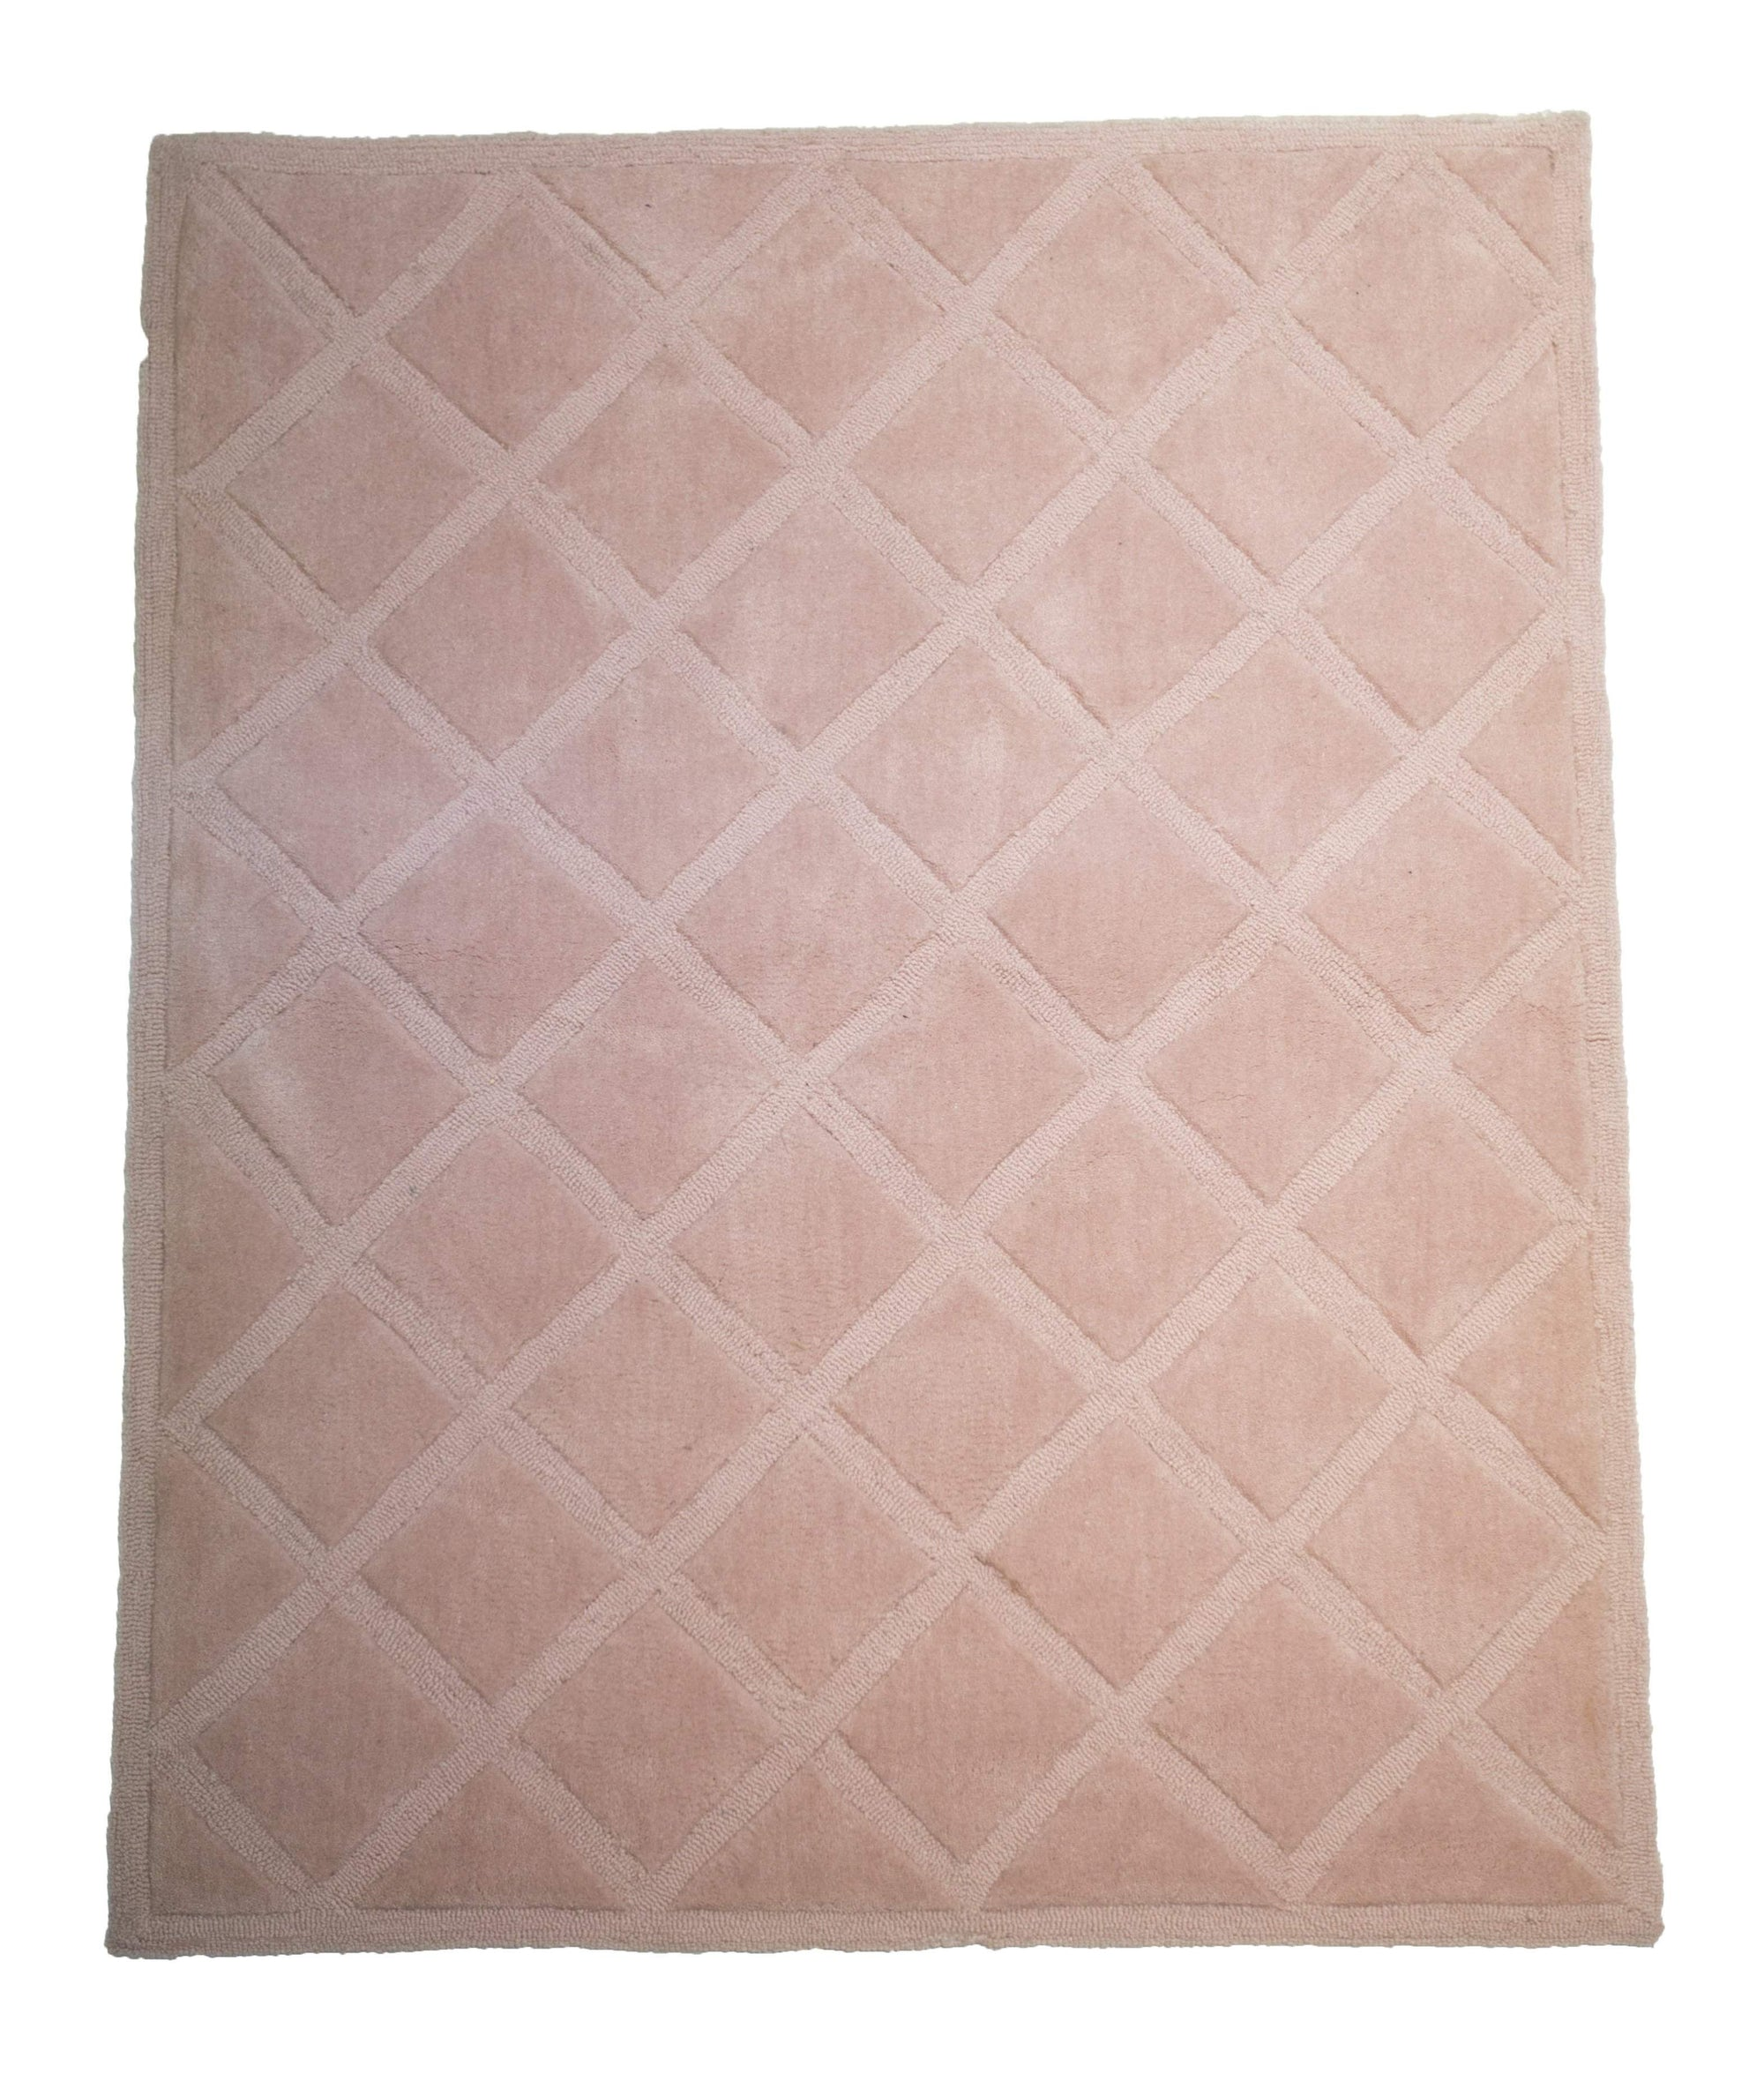 Girls Baby Pink Diamond Design Tufted Area Rug-Rug Shop and More